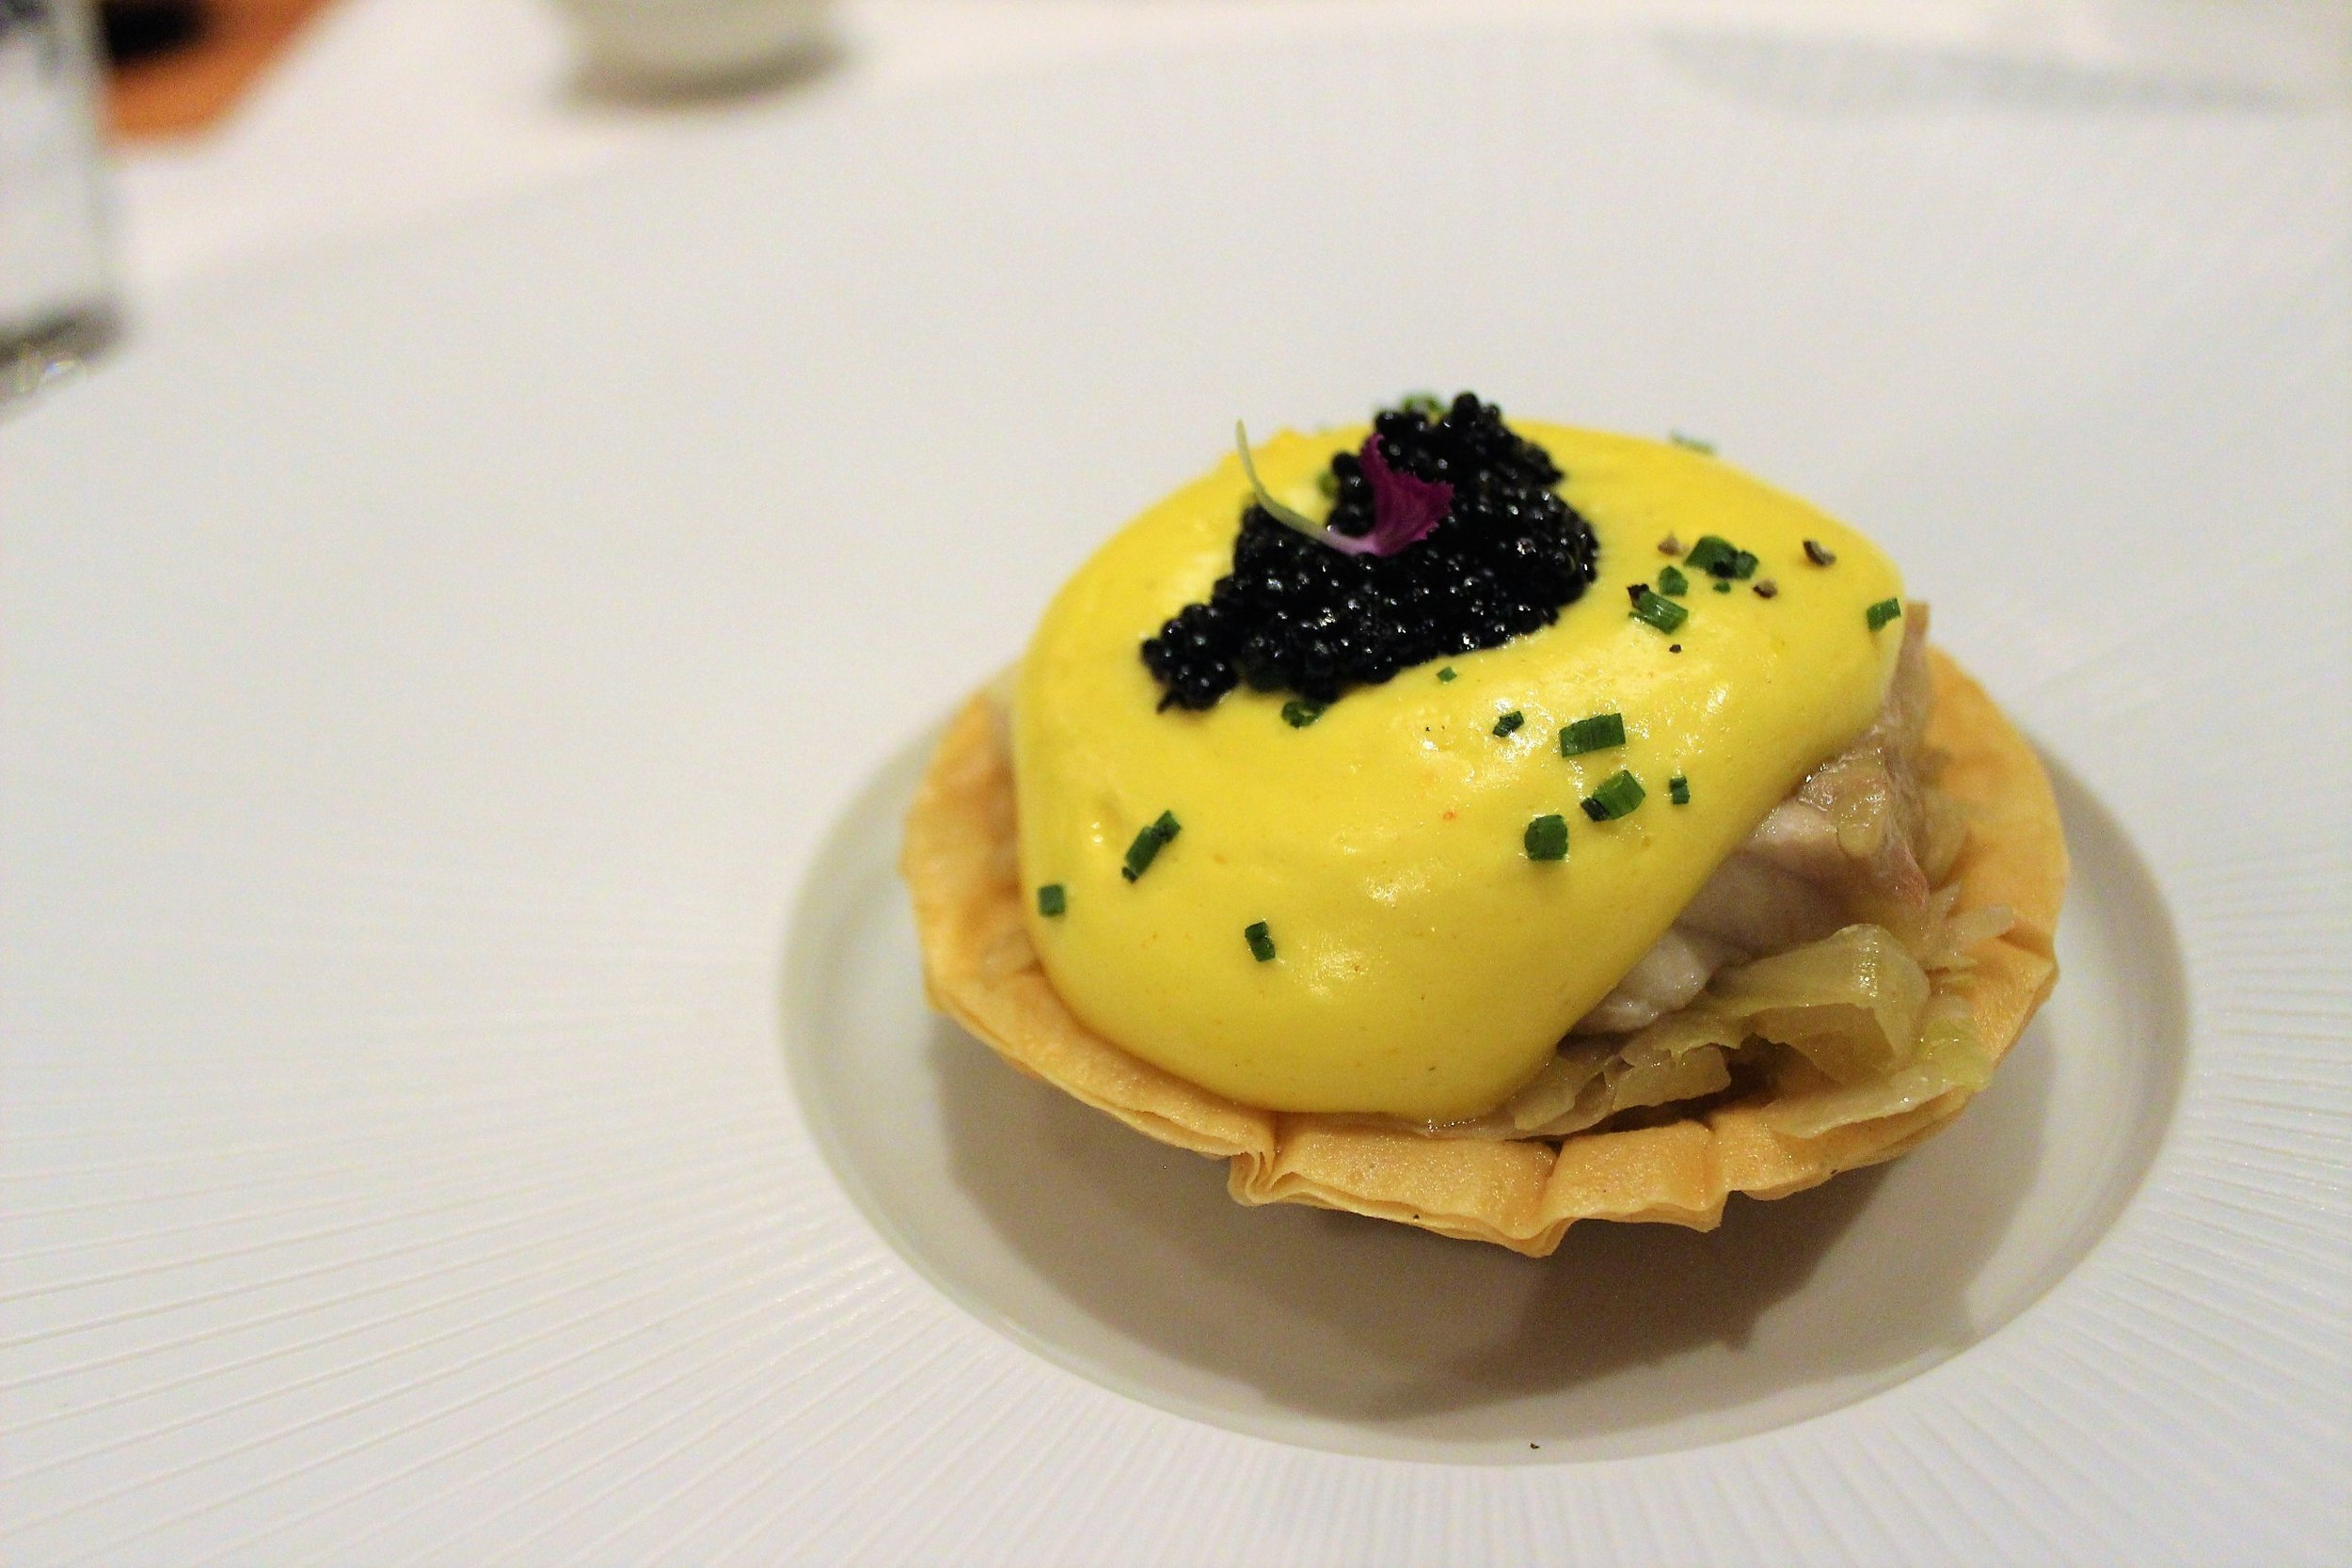 Sturgeon and Sauerkraut Tart at Gabriel Kreuther in New York City